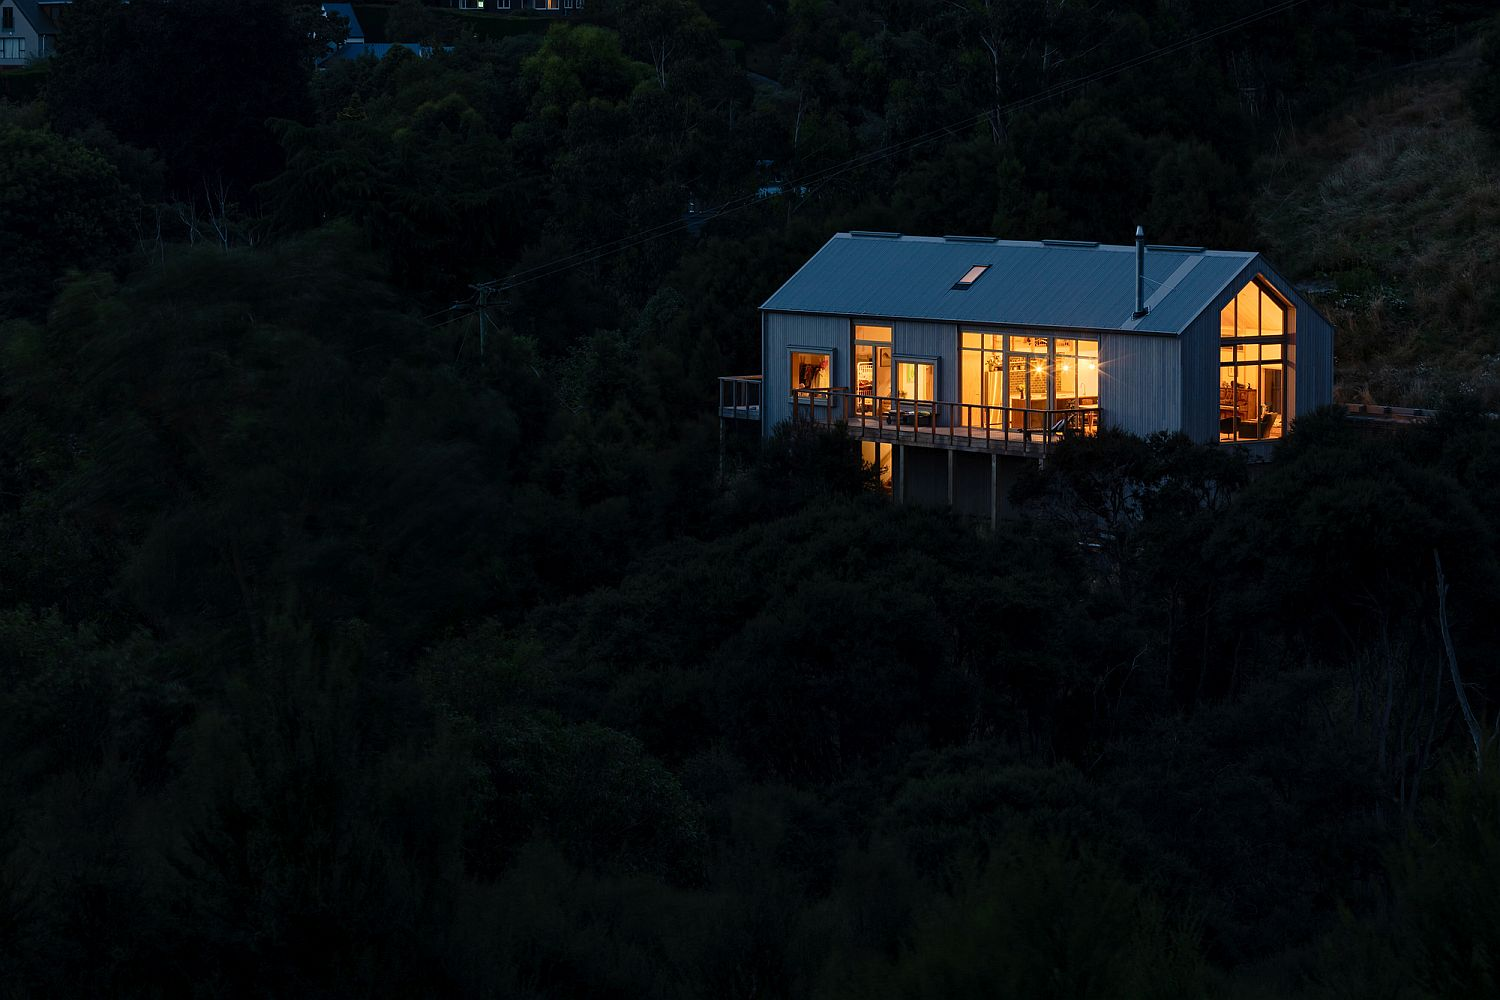 View of the Governors Bay House in New Zealand after sunset